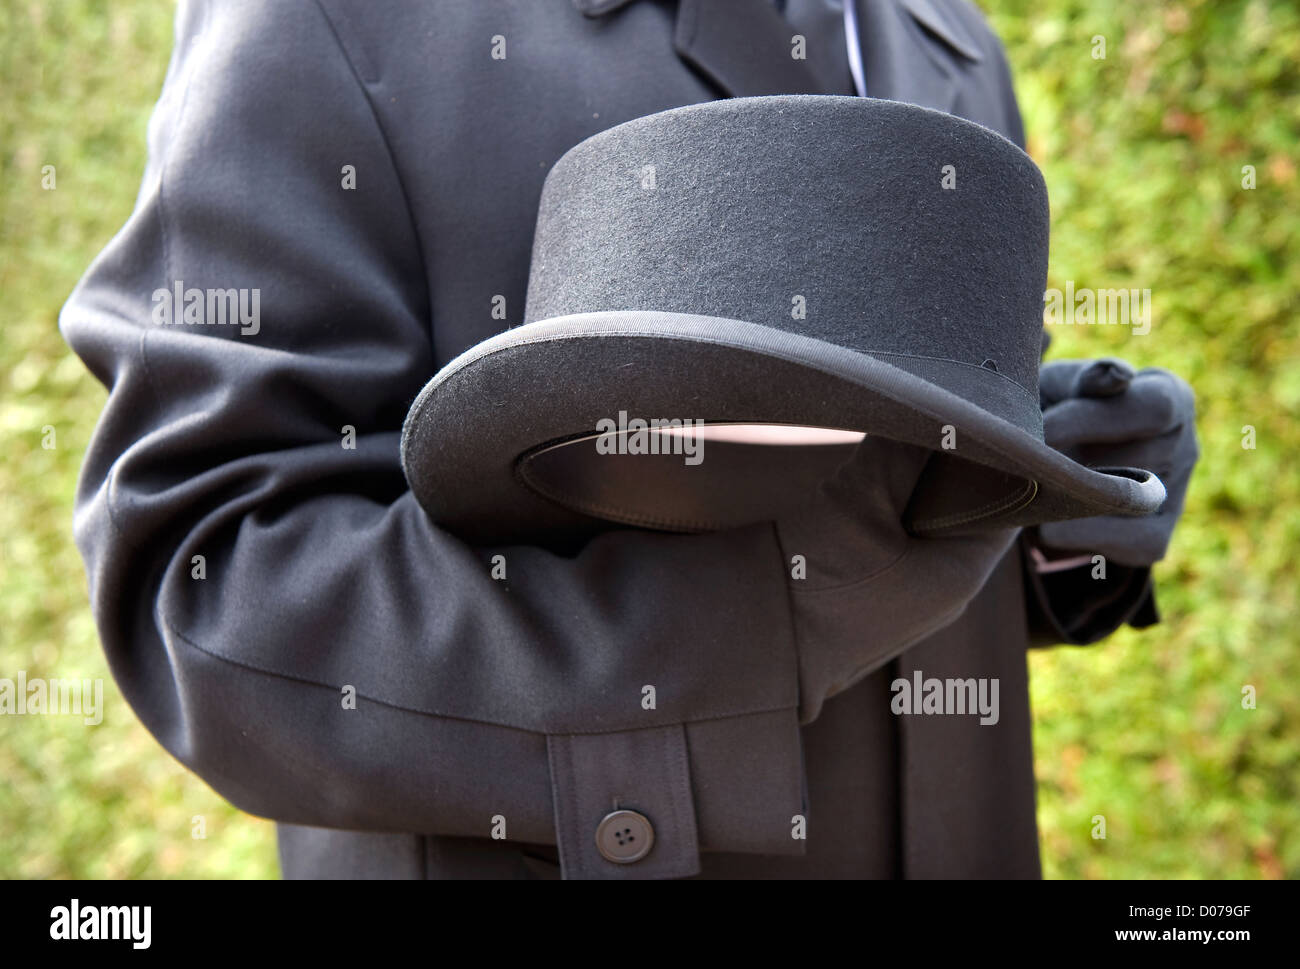 A funeral leader is respectfully carrying his hat - Stock Image